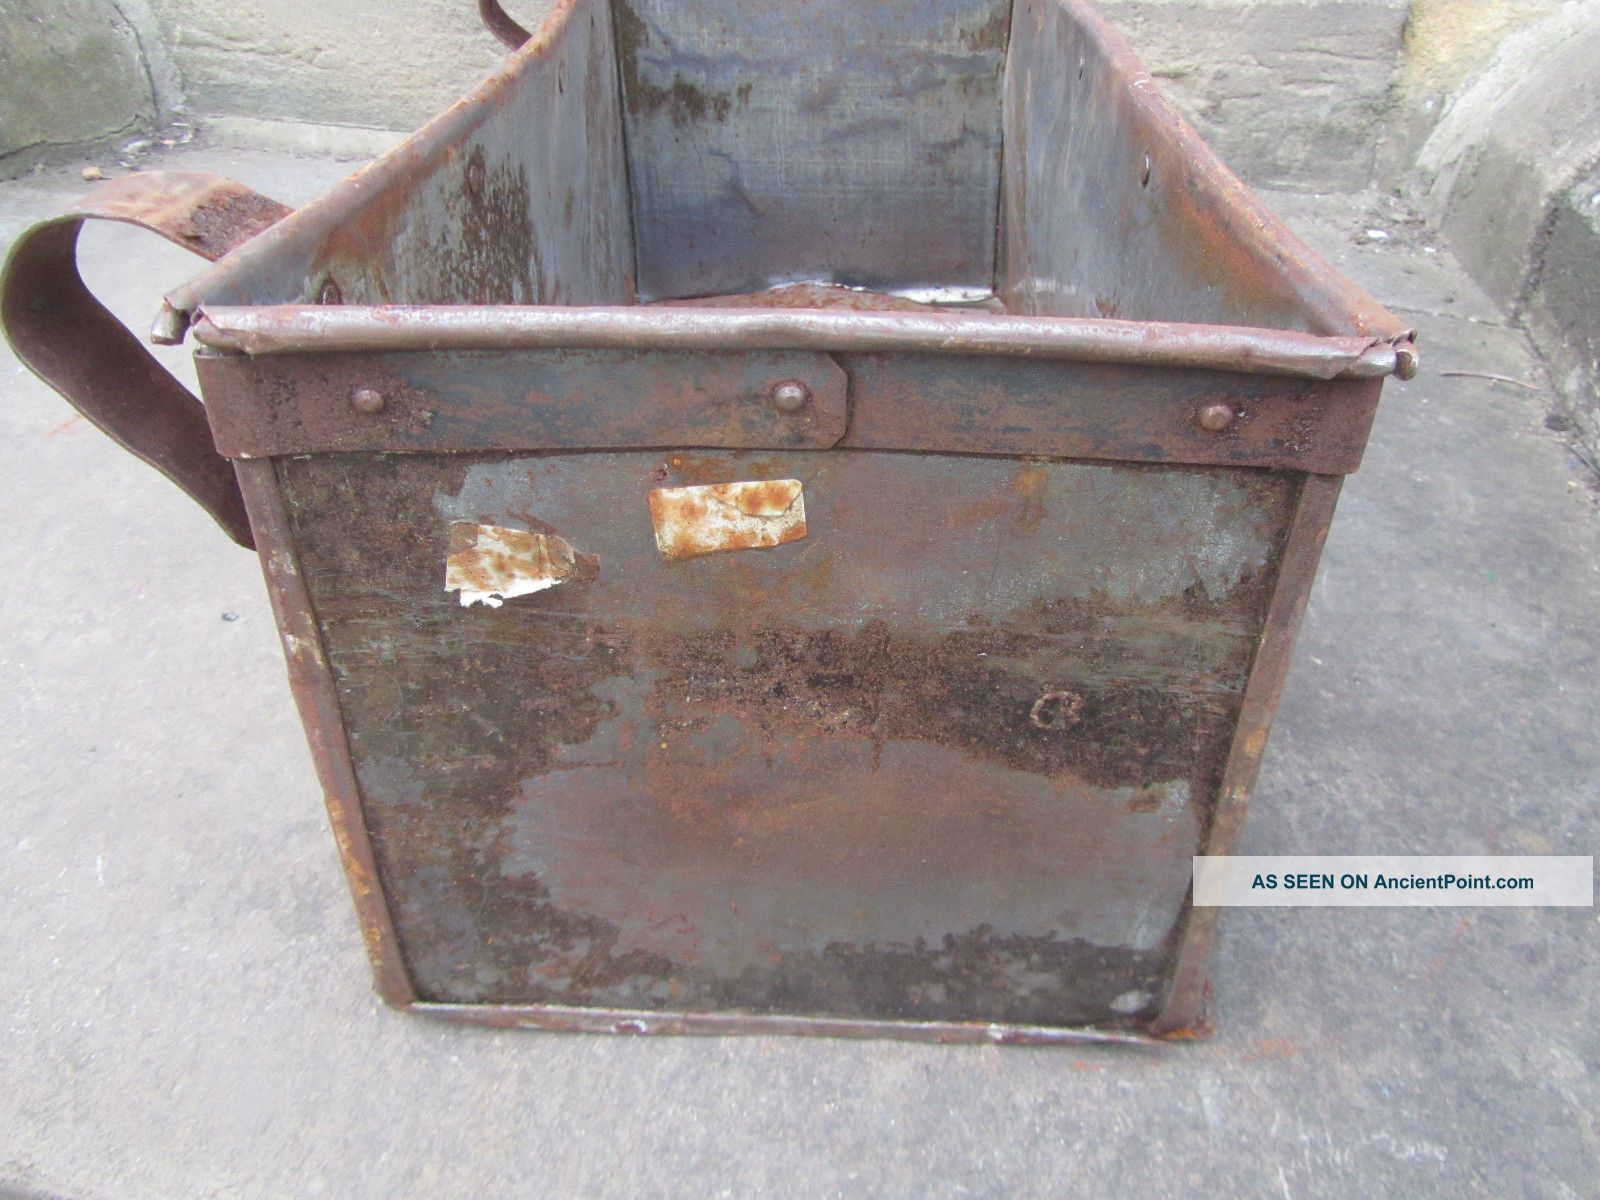 Metal Trough Bathtub : Large Antique Metal Trough Tub Planter Box Brass Plaque Industrial ...